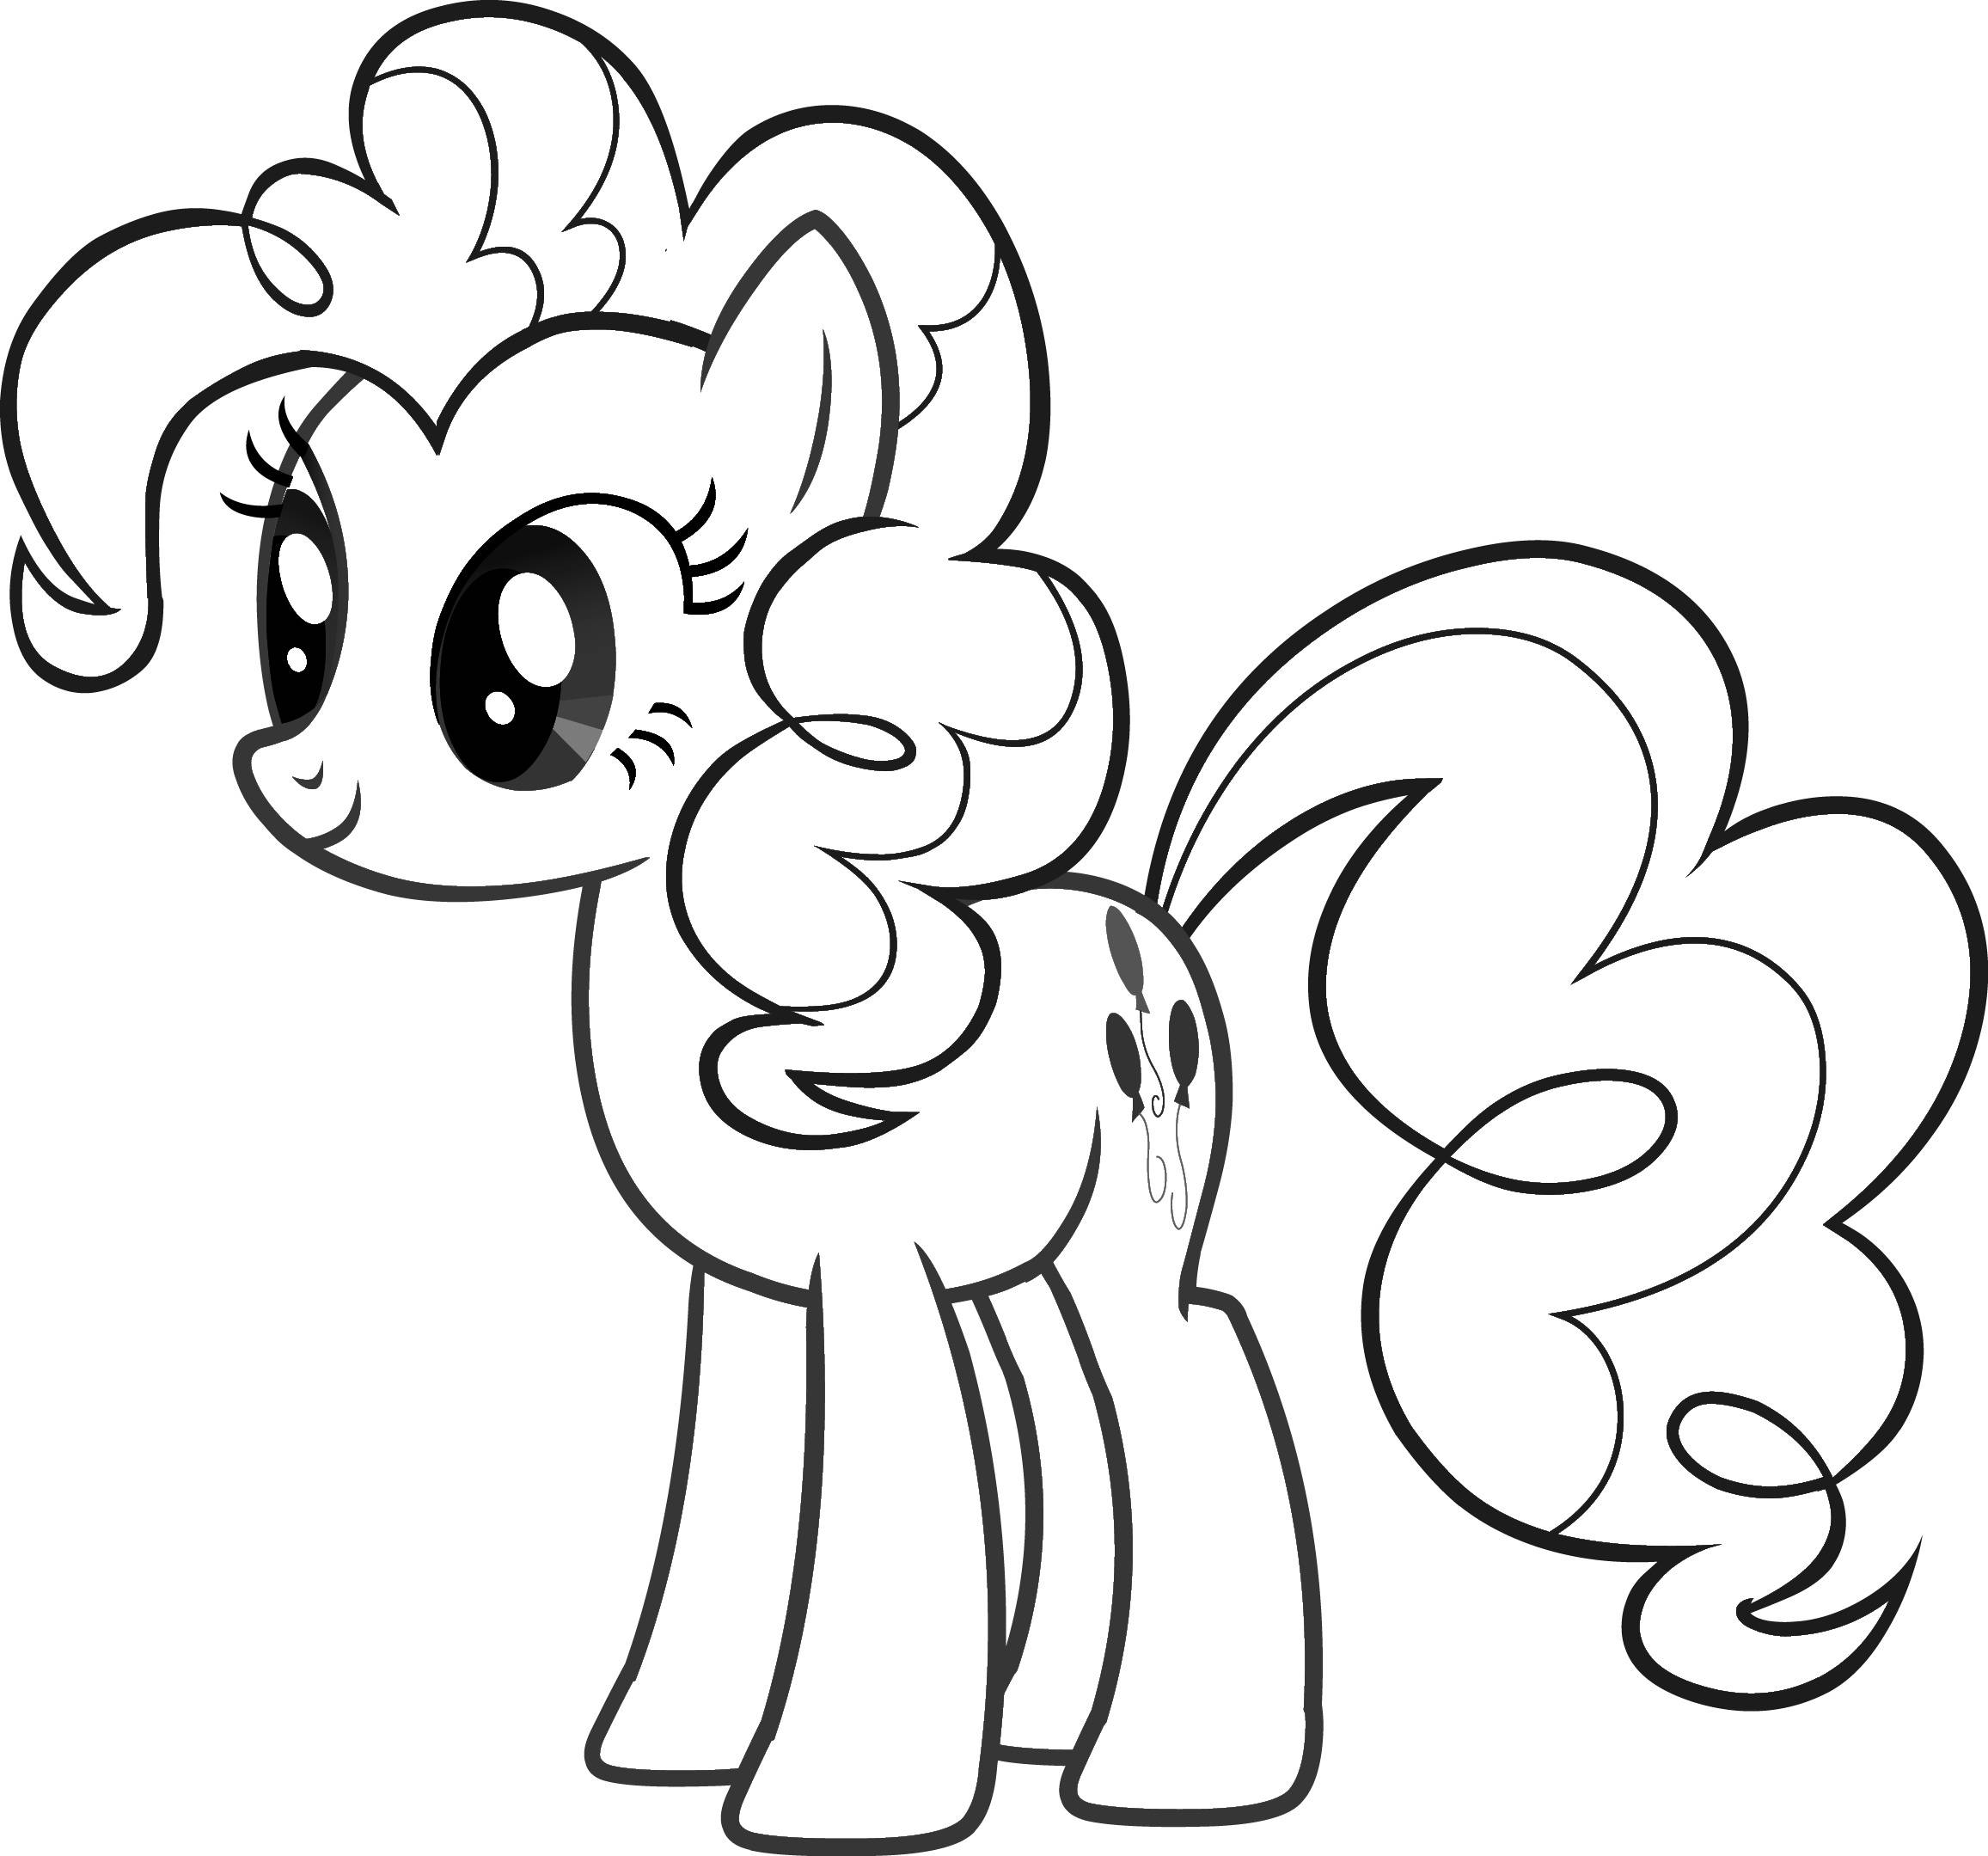 my coloring pages little pony | TimyKids